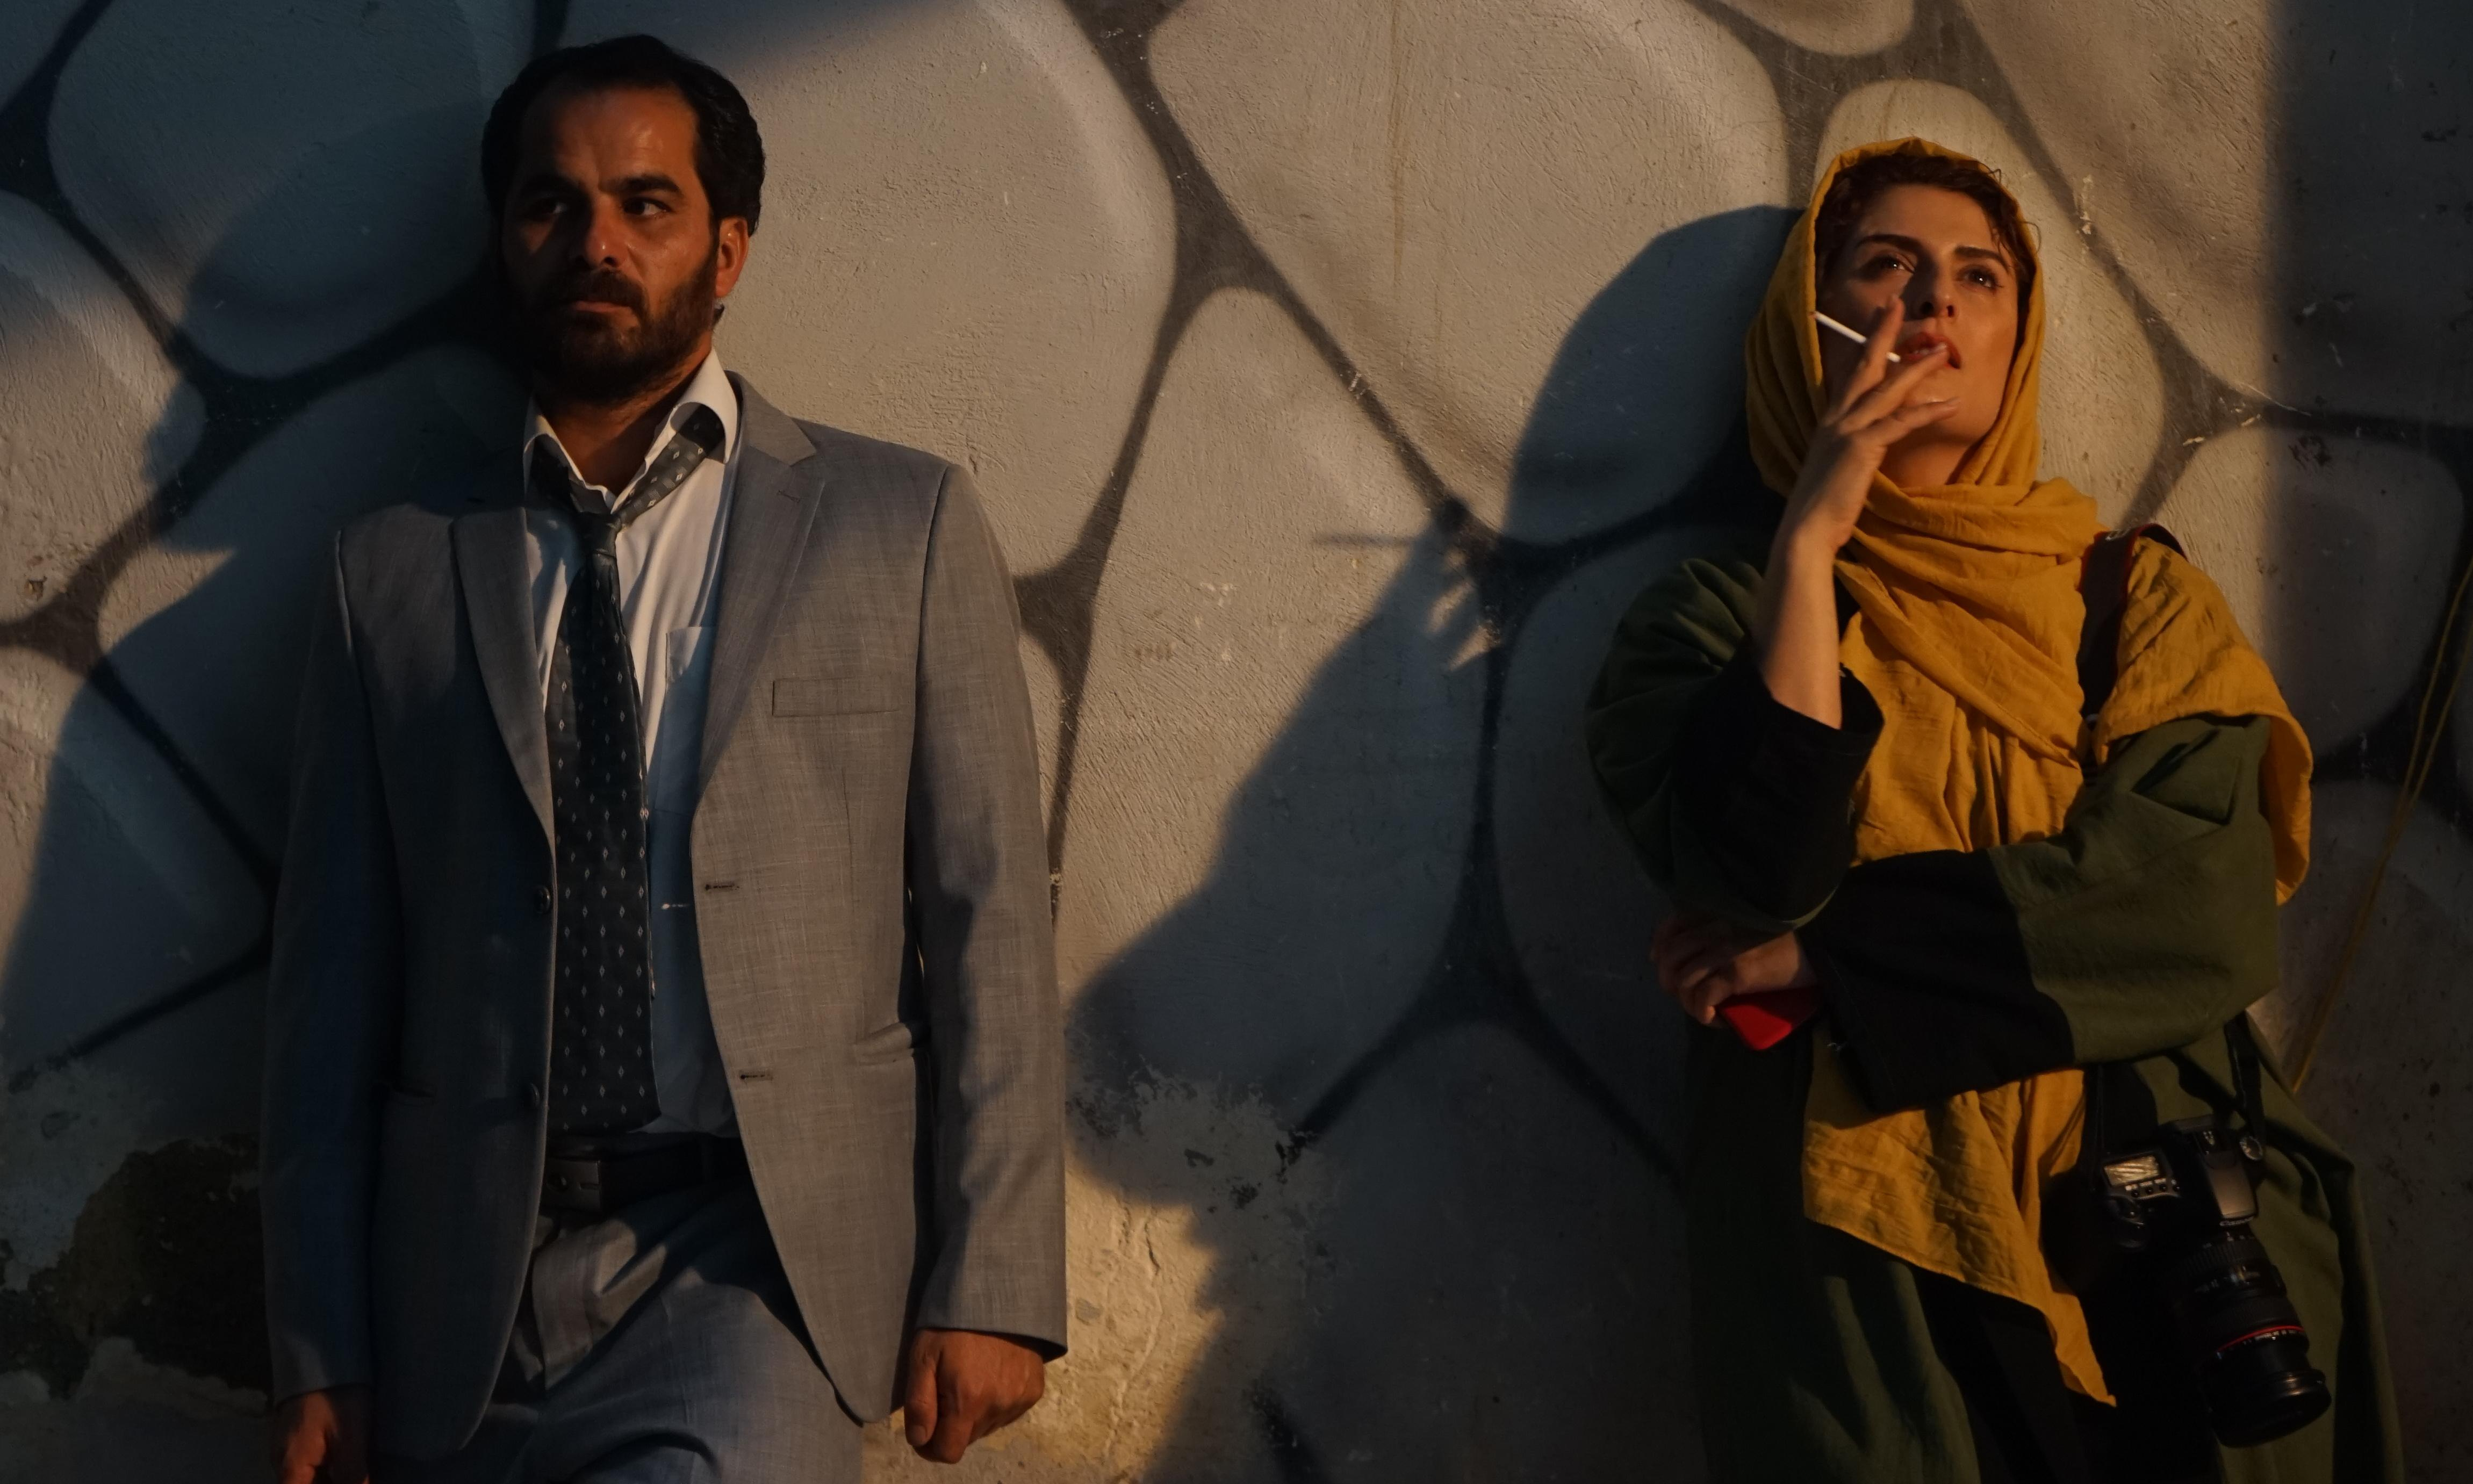 Tehran: City of Love review – the rocky road to romance in Iran